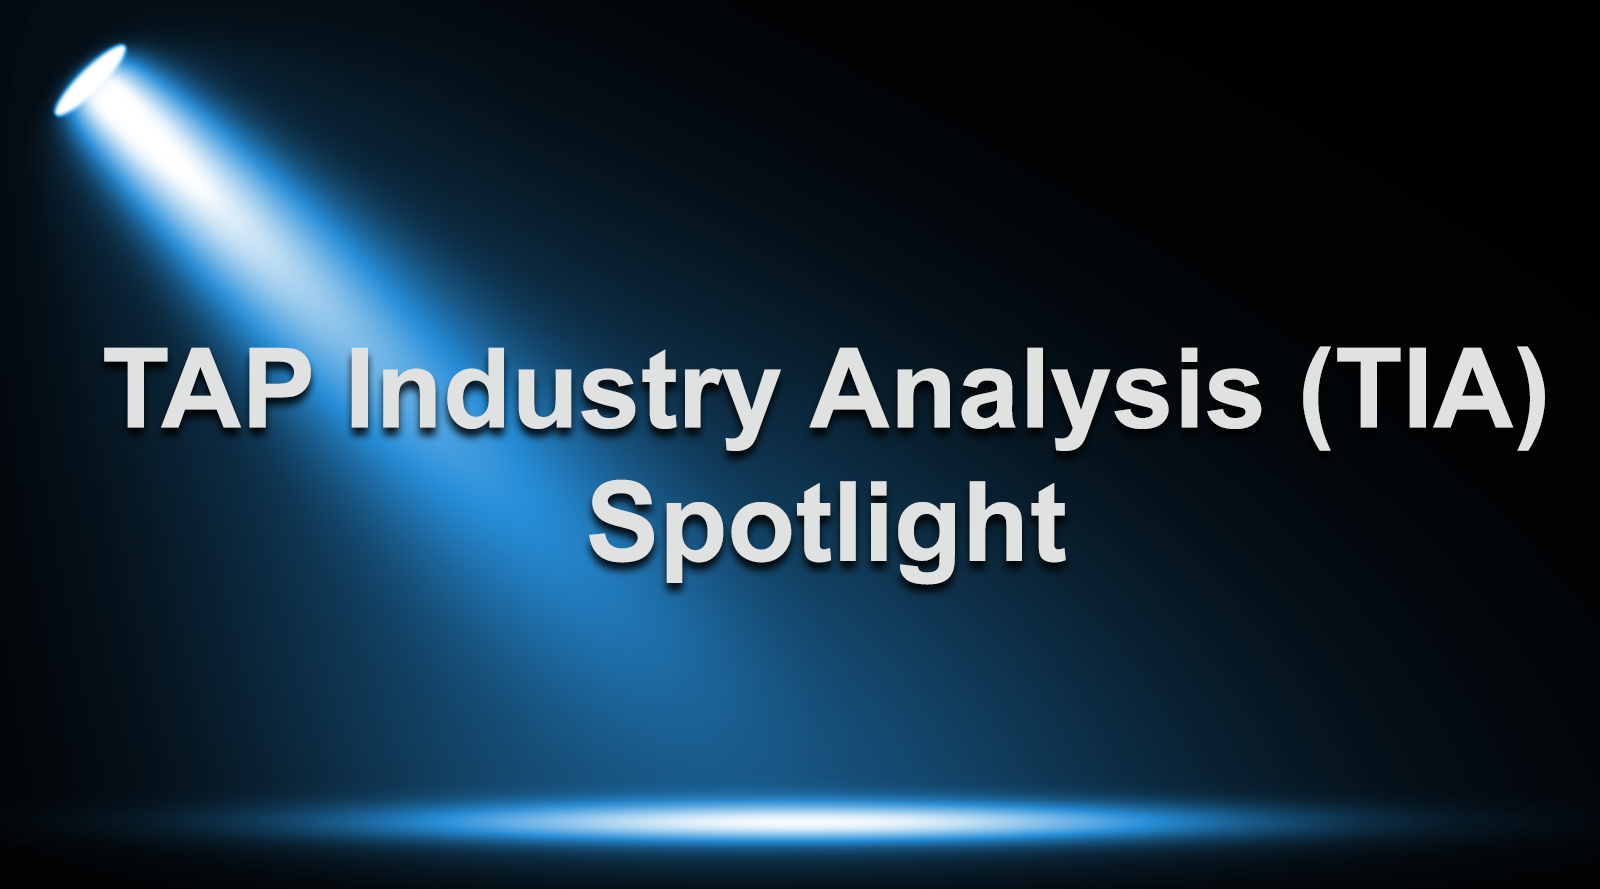 TAP Industry Analysis (TIA) Spotlight - Rob Adams, Founder Chai & Coaching